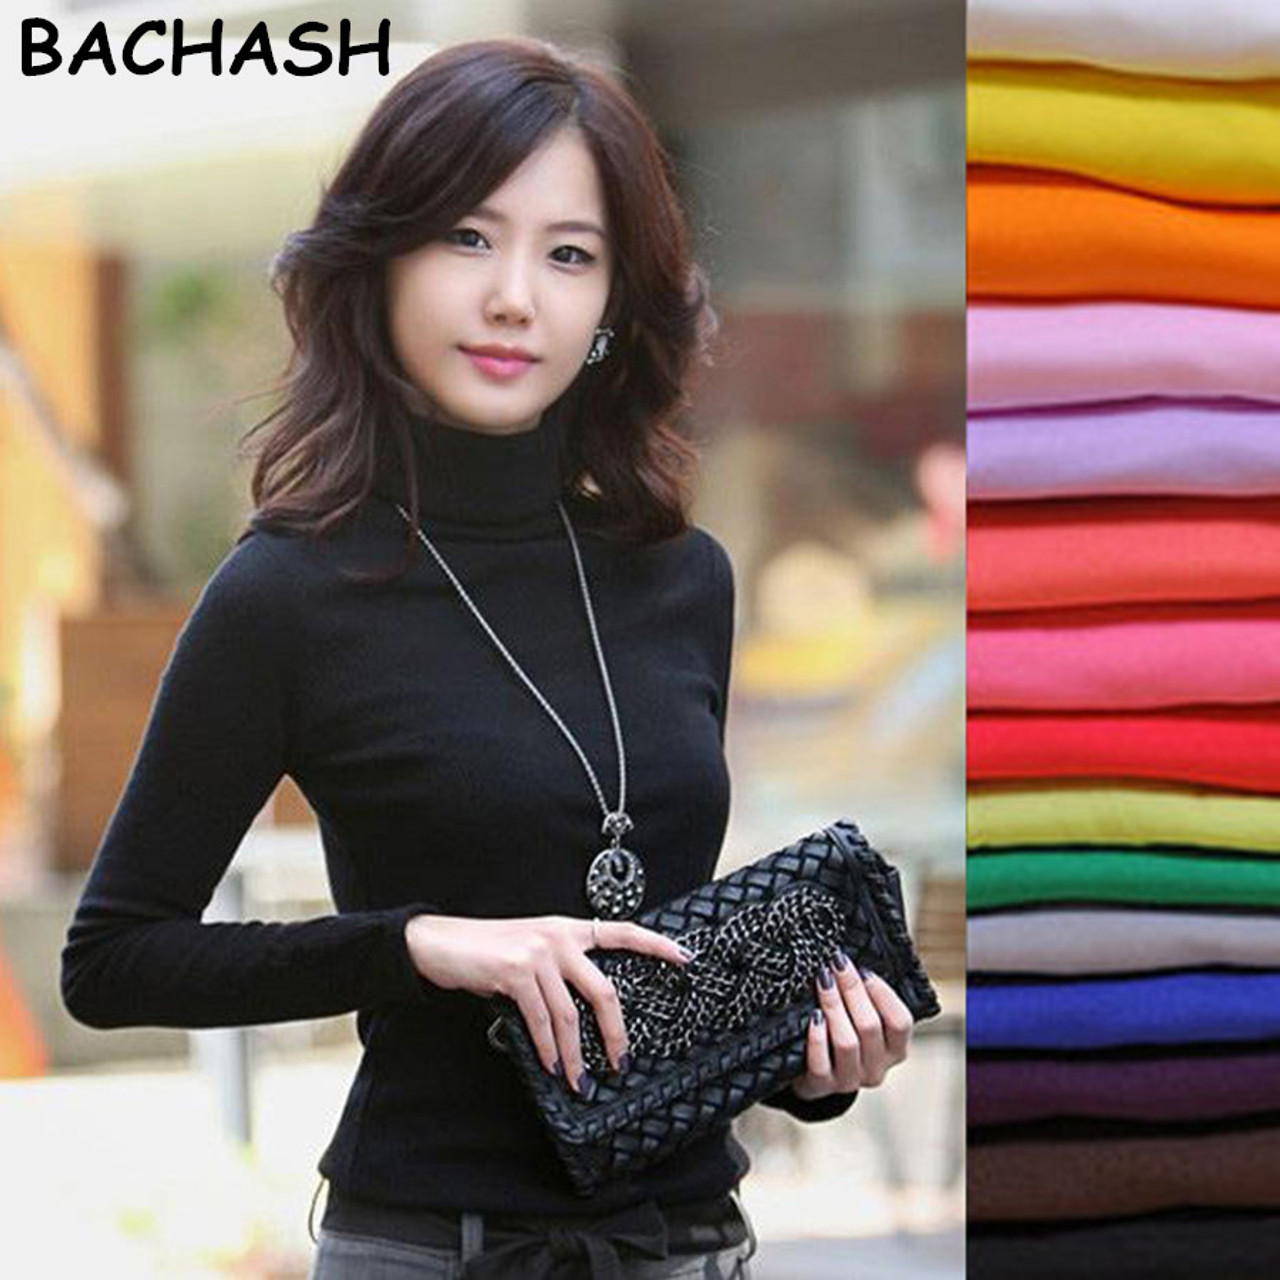 d8bf8a8552 BACHASH 2018 High Quality Fashion Spring Autumn Winter Sweater Women Wool  Turtleneck Pullovers Fashion Women s Solid Sweaters - OnshopDeals.Com